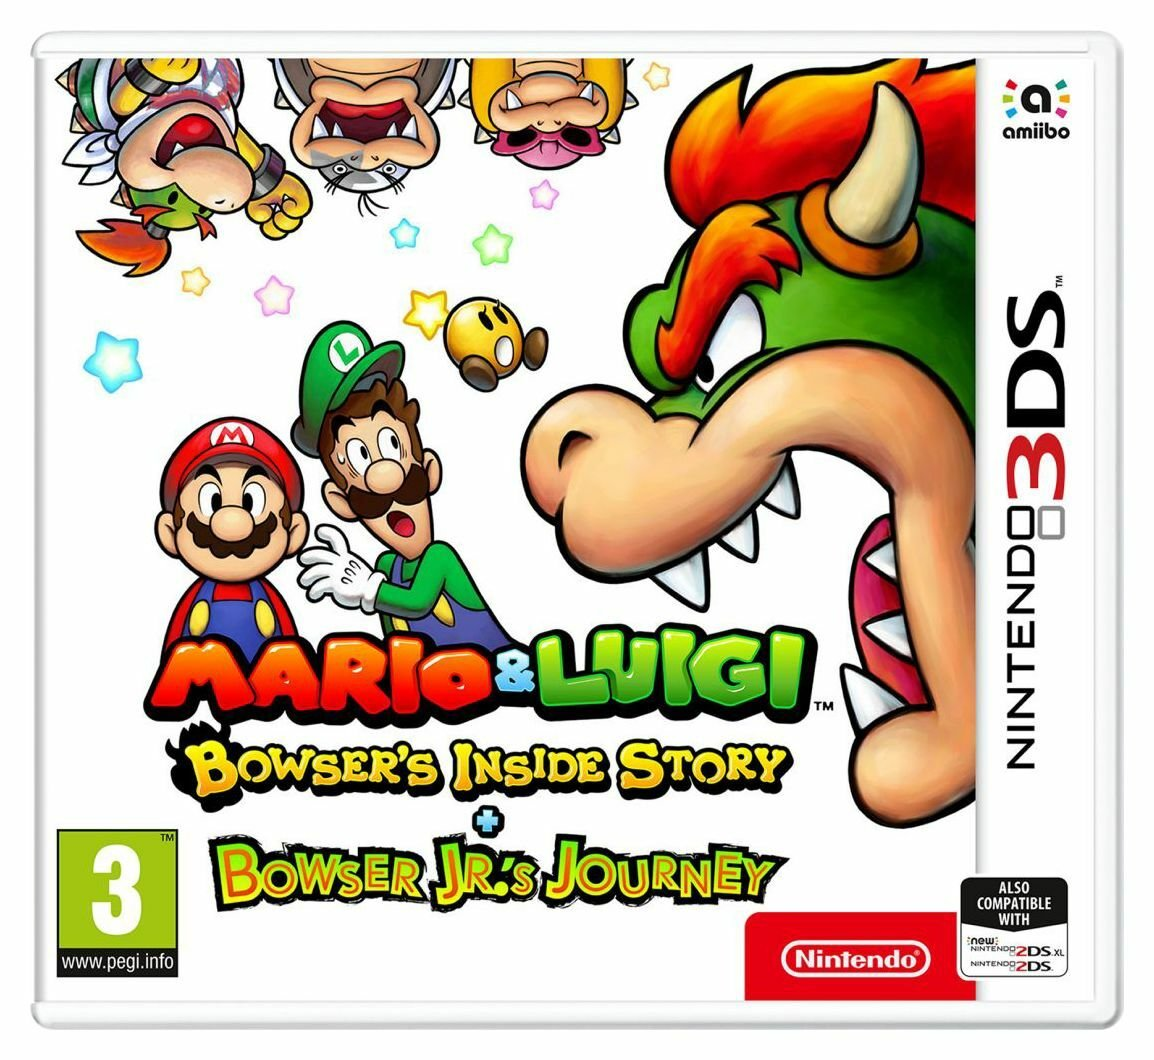 Bowsers Inside Story & Bowser Jrs Journey Nintendo 3DS Game